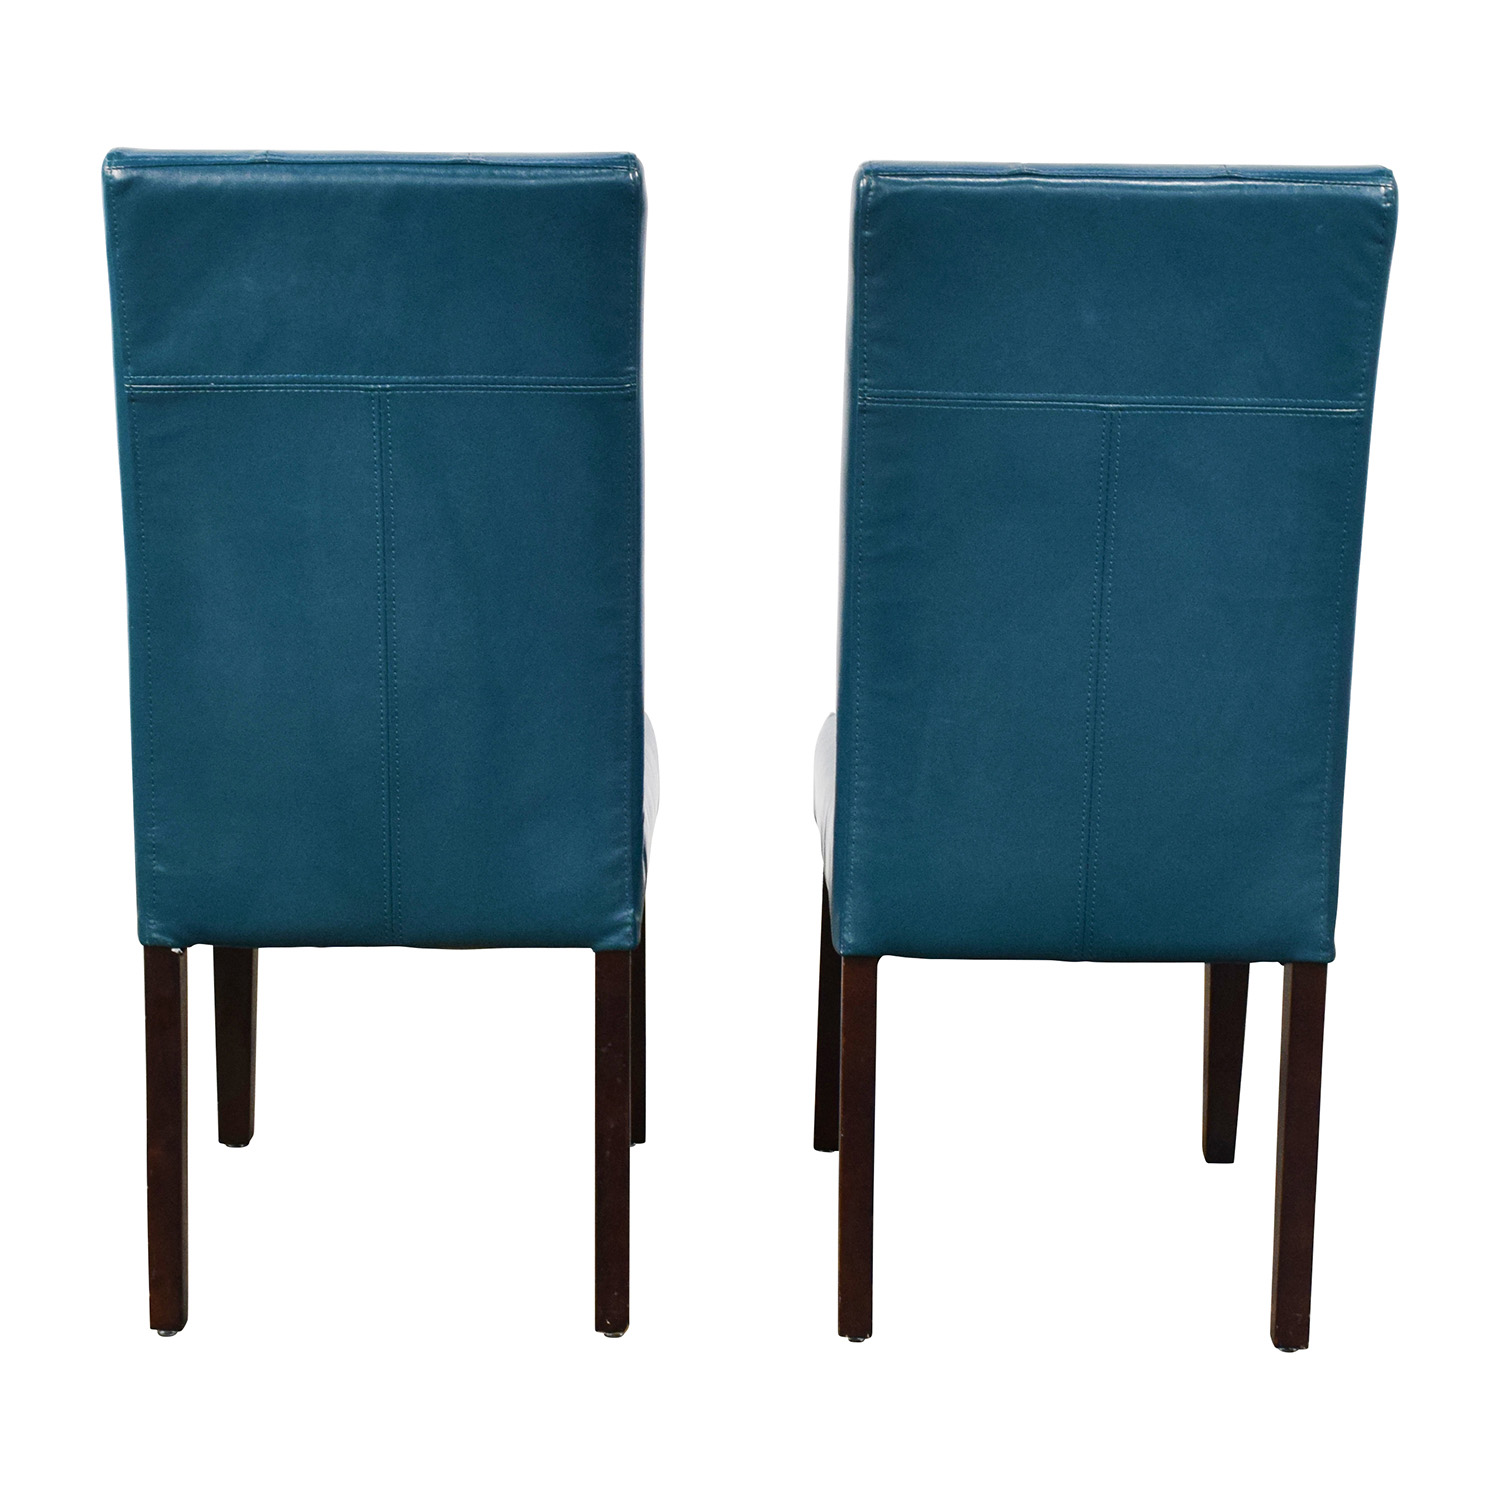 Groovy 76 Off Pier 1 Pier 1 Imports Mason Collection Teal Dining Chairs Chairs Creativecarmelina Interior Chair Design Creativecarmelinacom